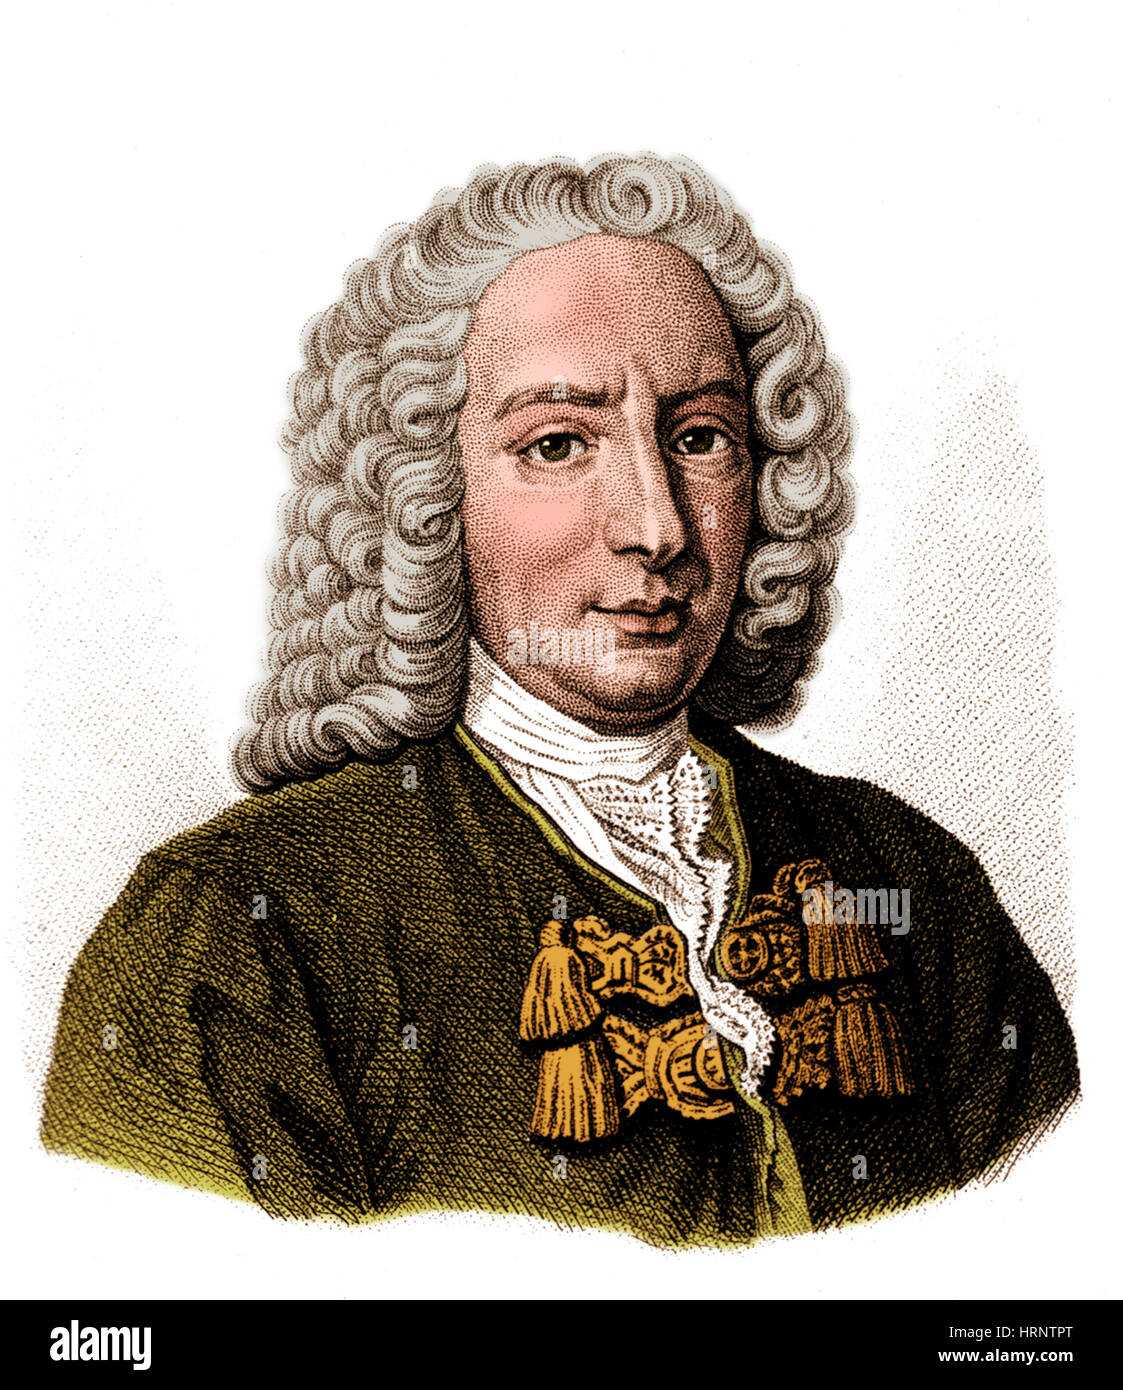 Physicist Daniel Bernoulli: biography, discoveries and interesting facts 28